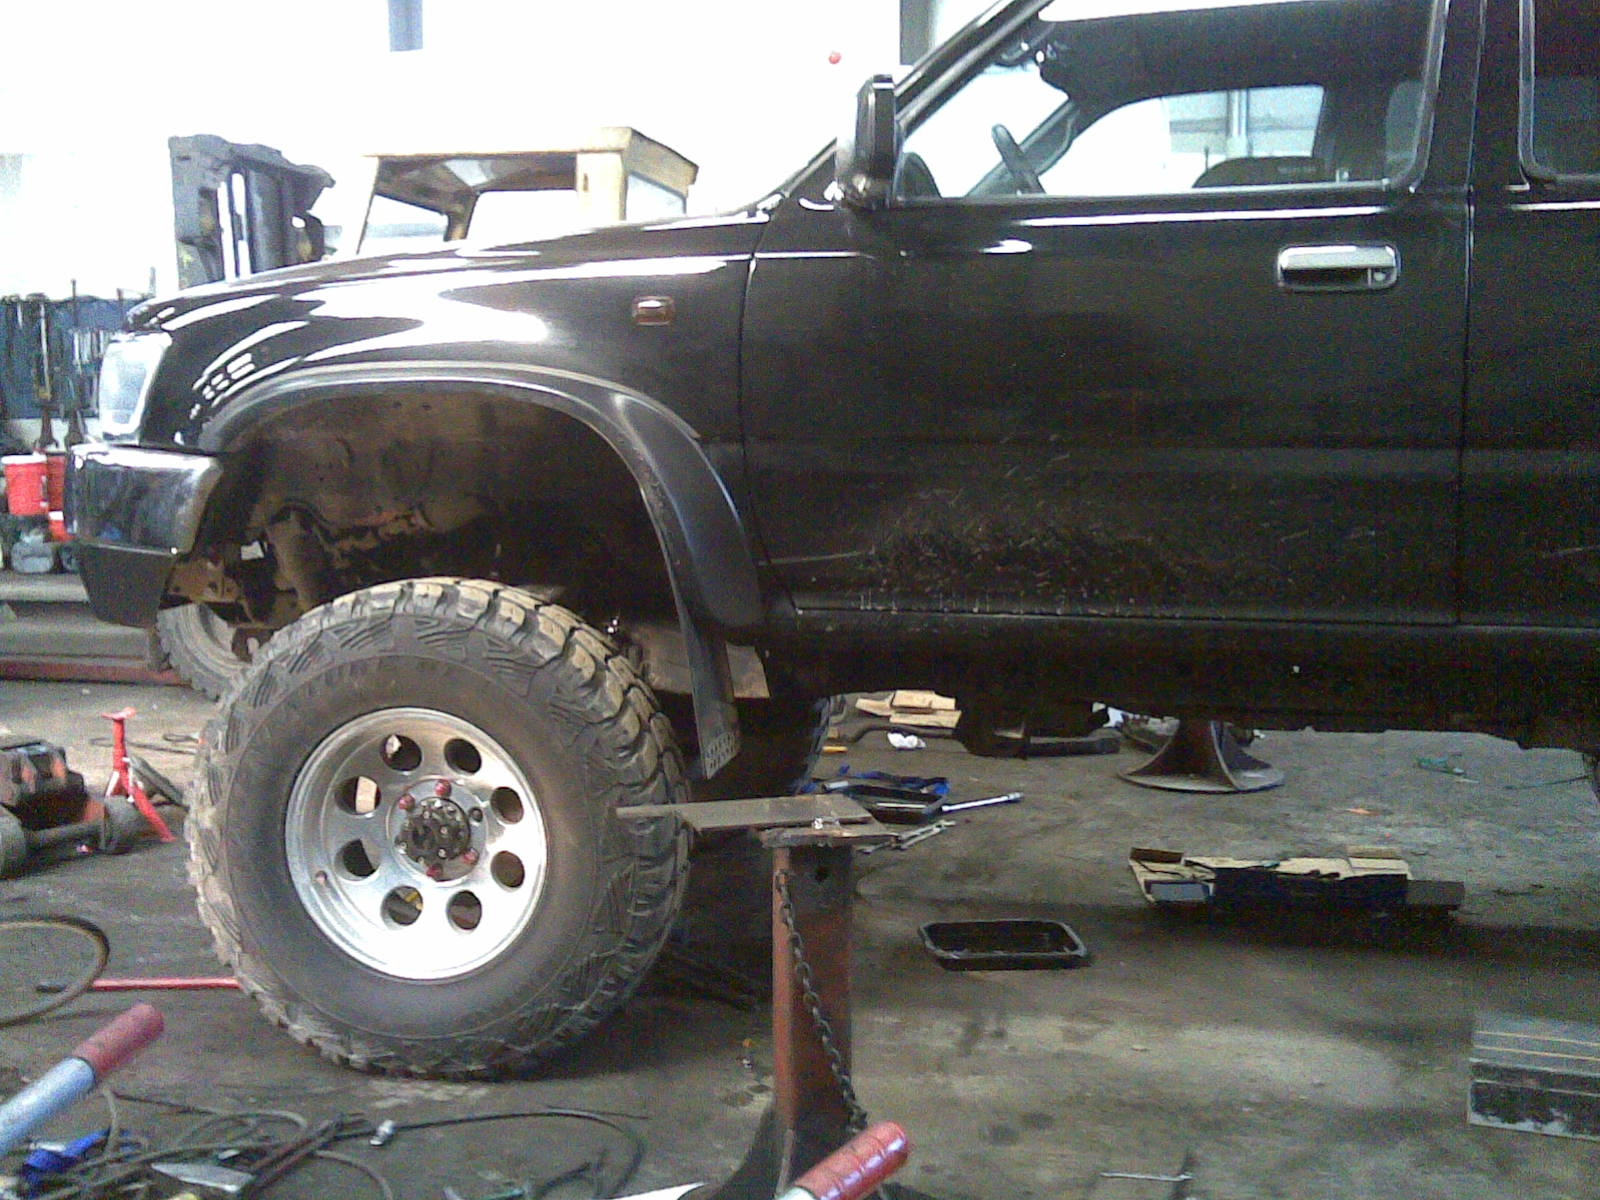 daddys_toy 1995 Toyota 4Runner 13615007